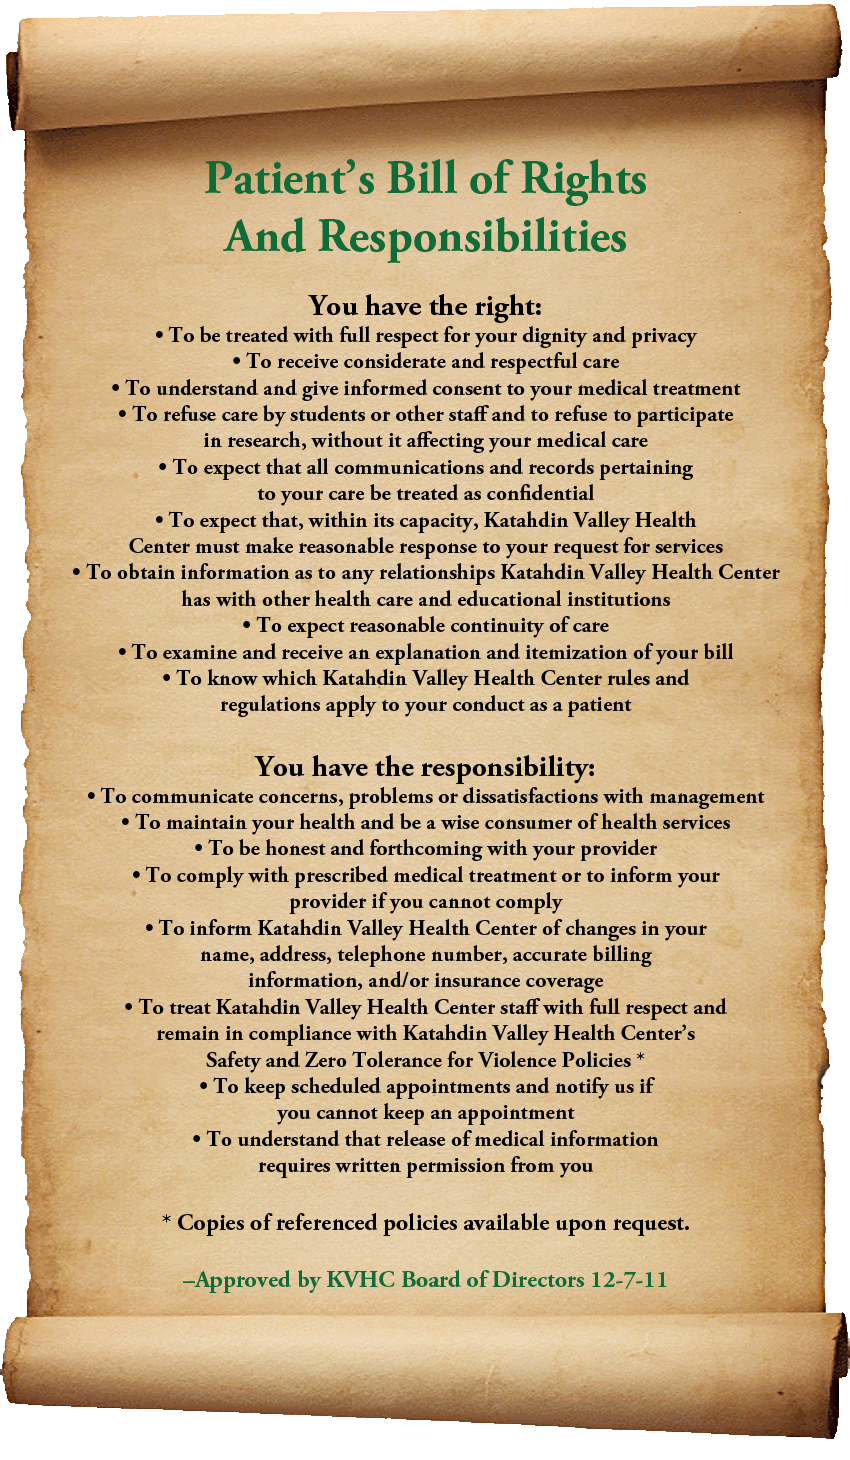 Bill_of_rights_Web